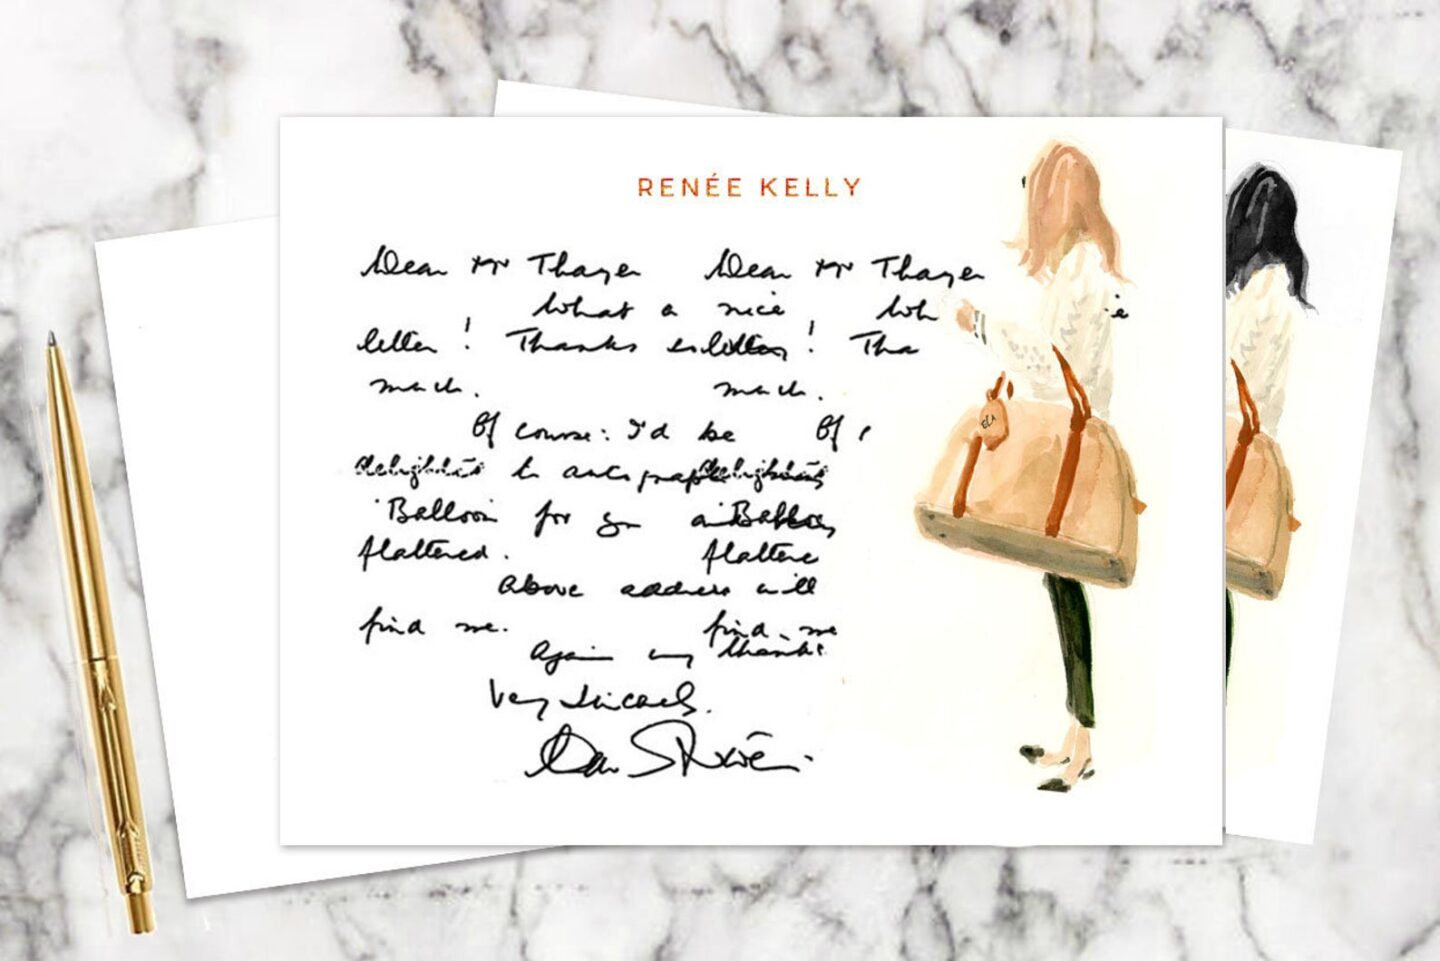 Handwritten note on custom stationery with a fashionable woman on the right carrying a bag.